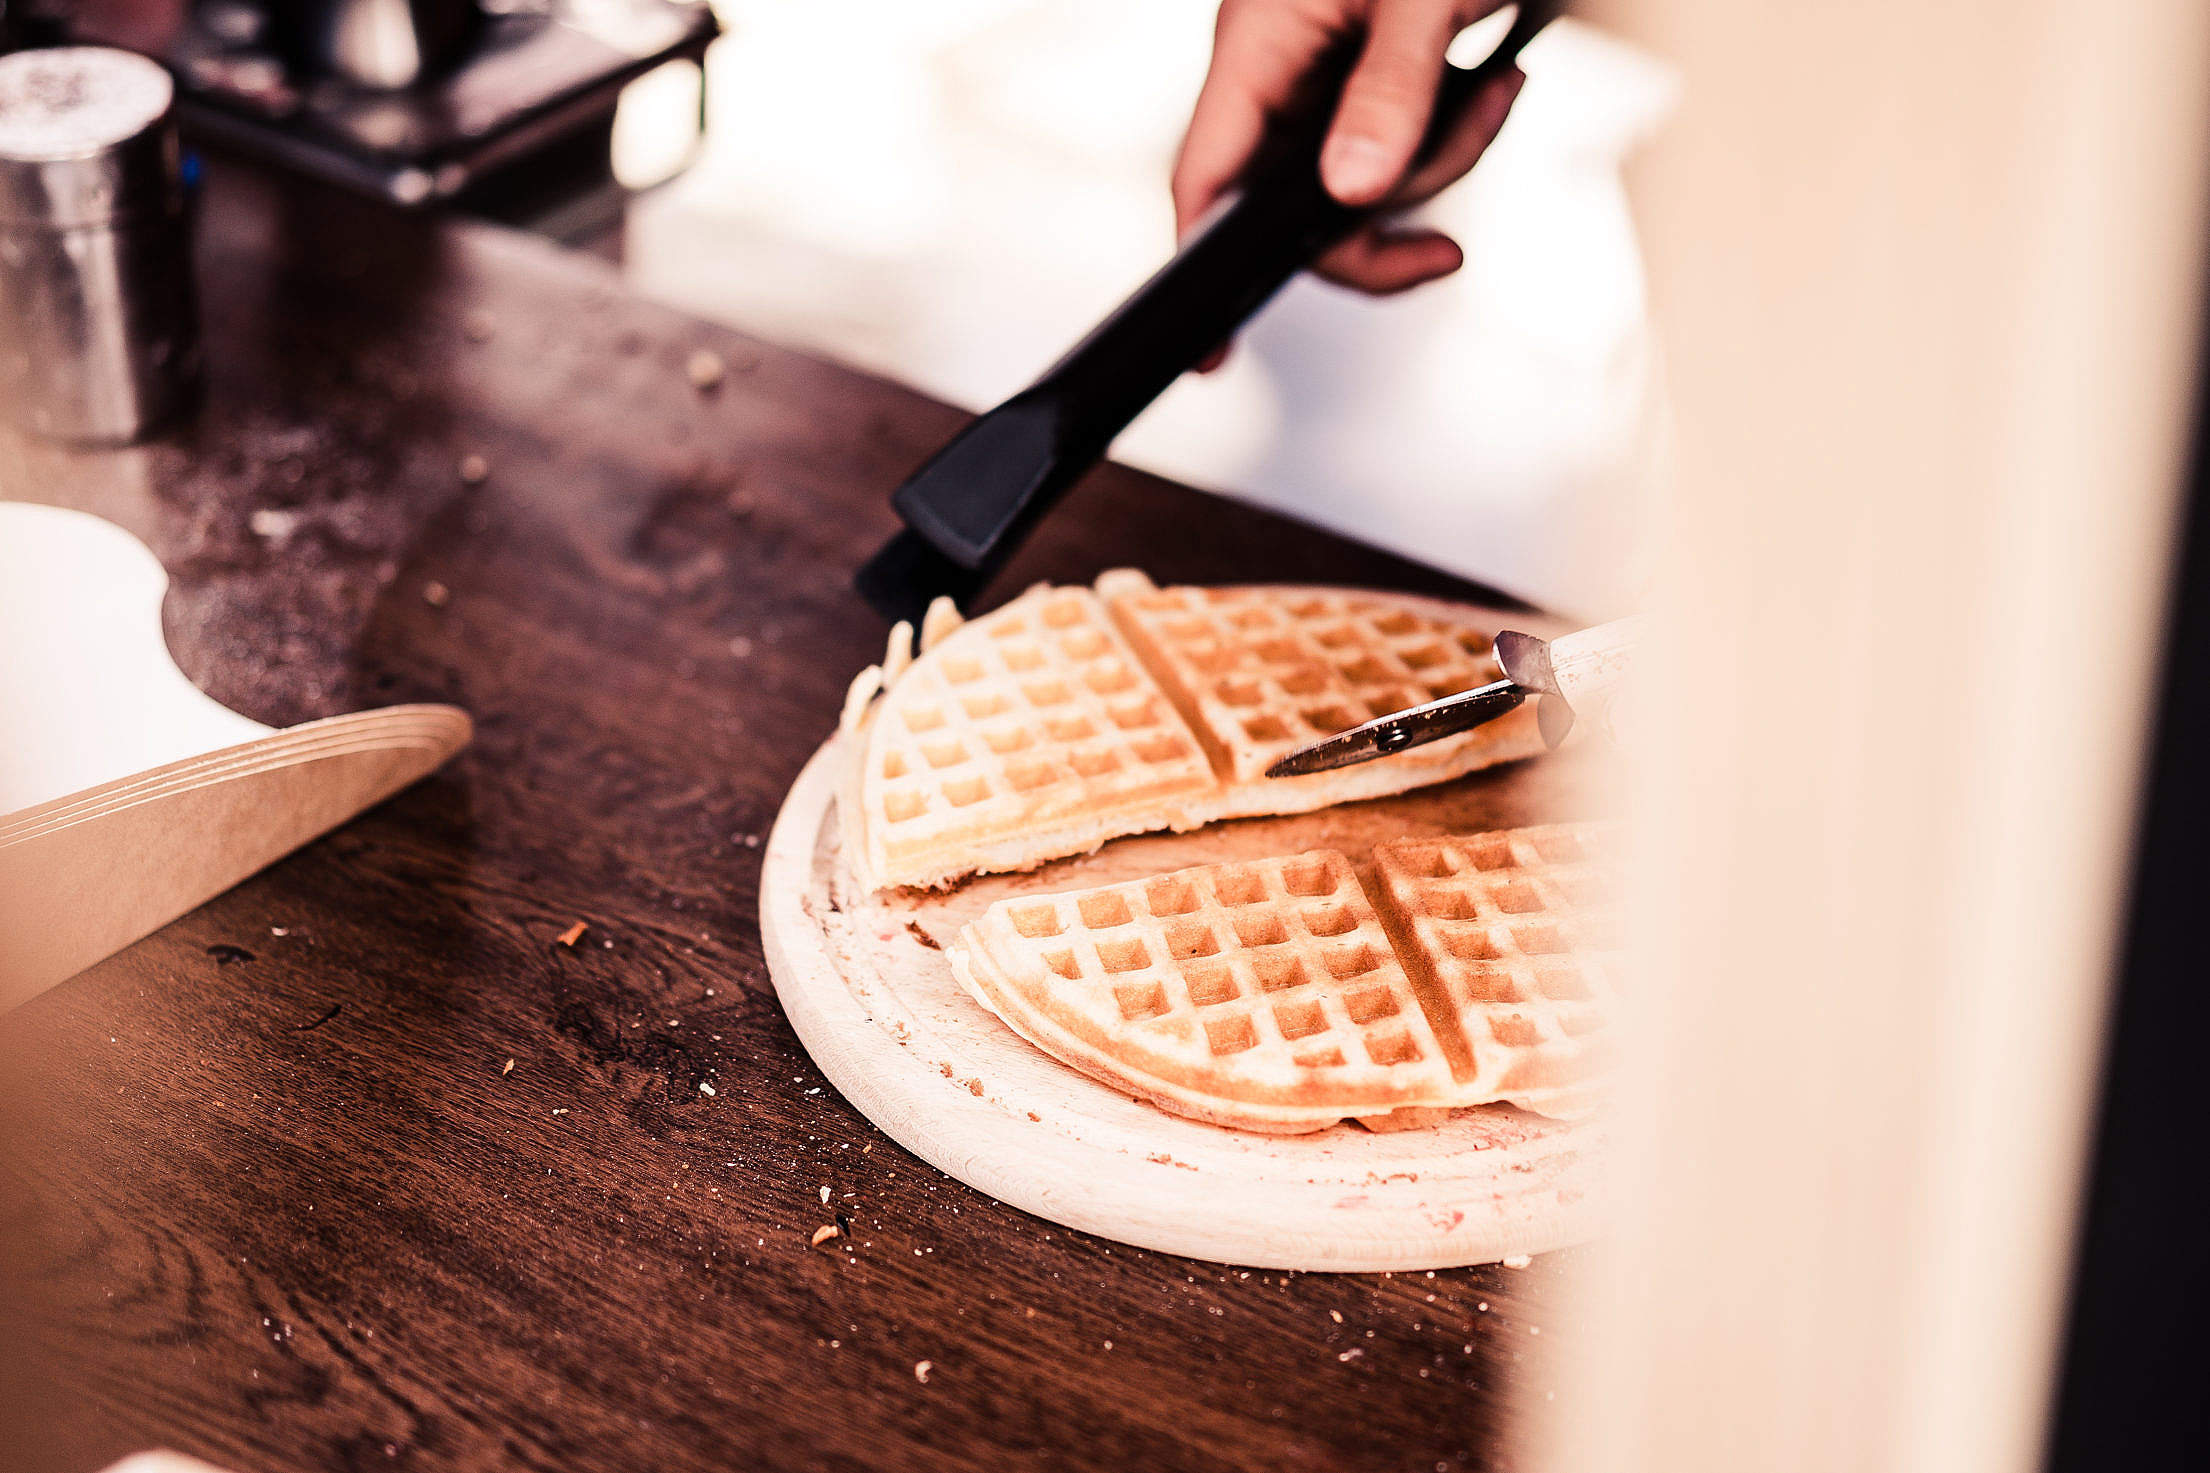 Download Making Waffles Cutting Them into Pieces Free Stock Photo